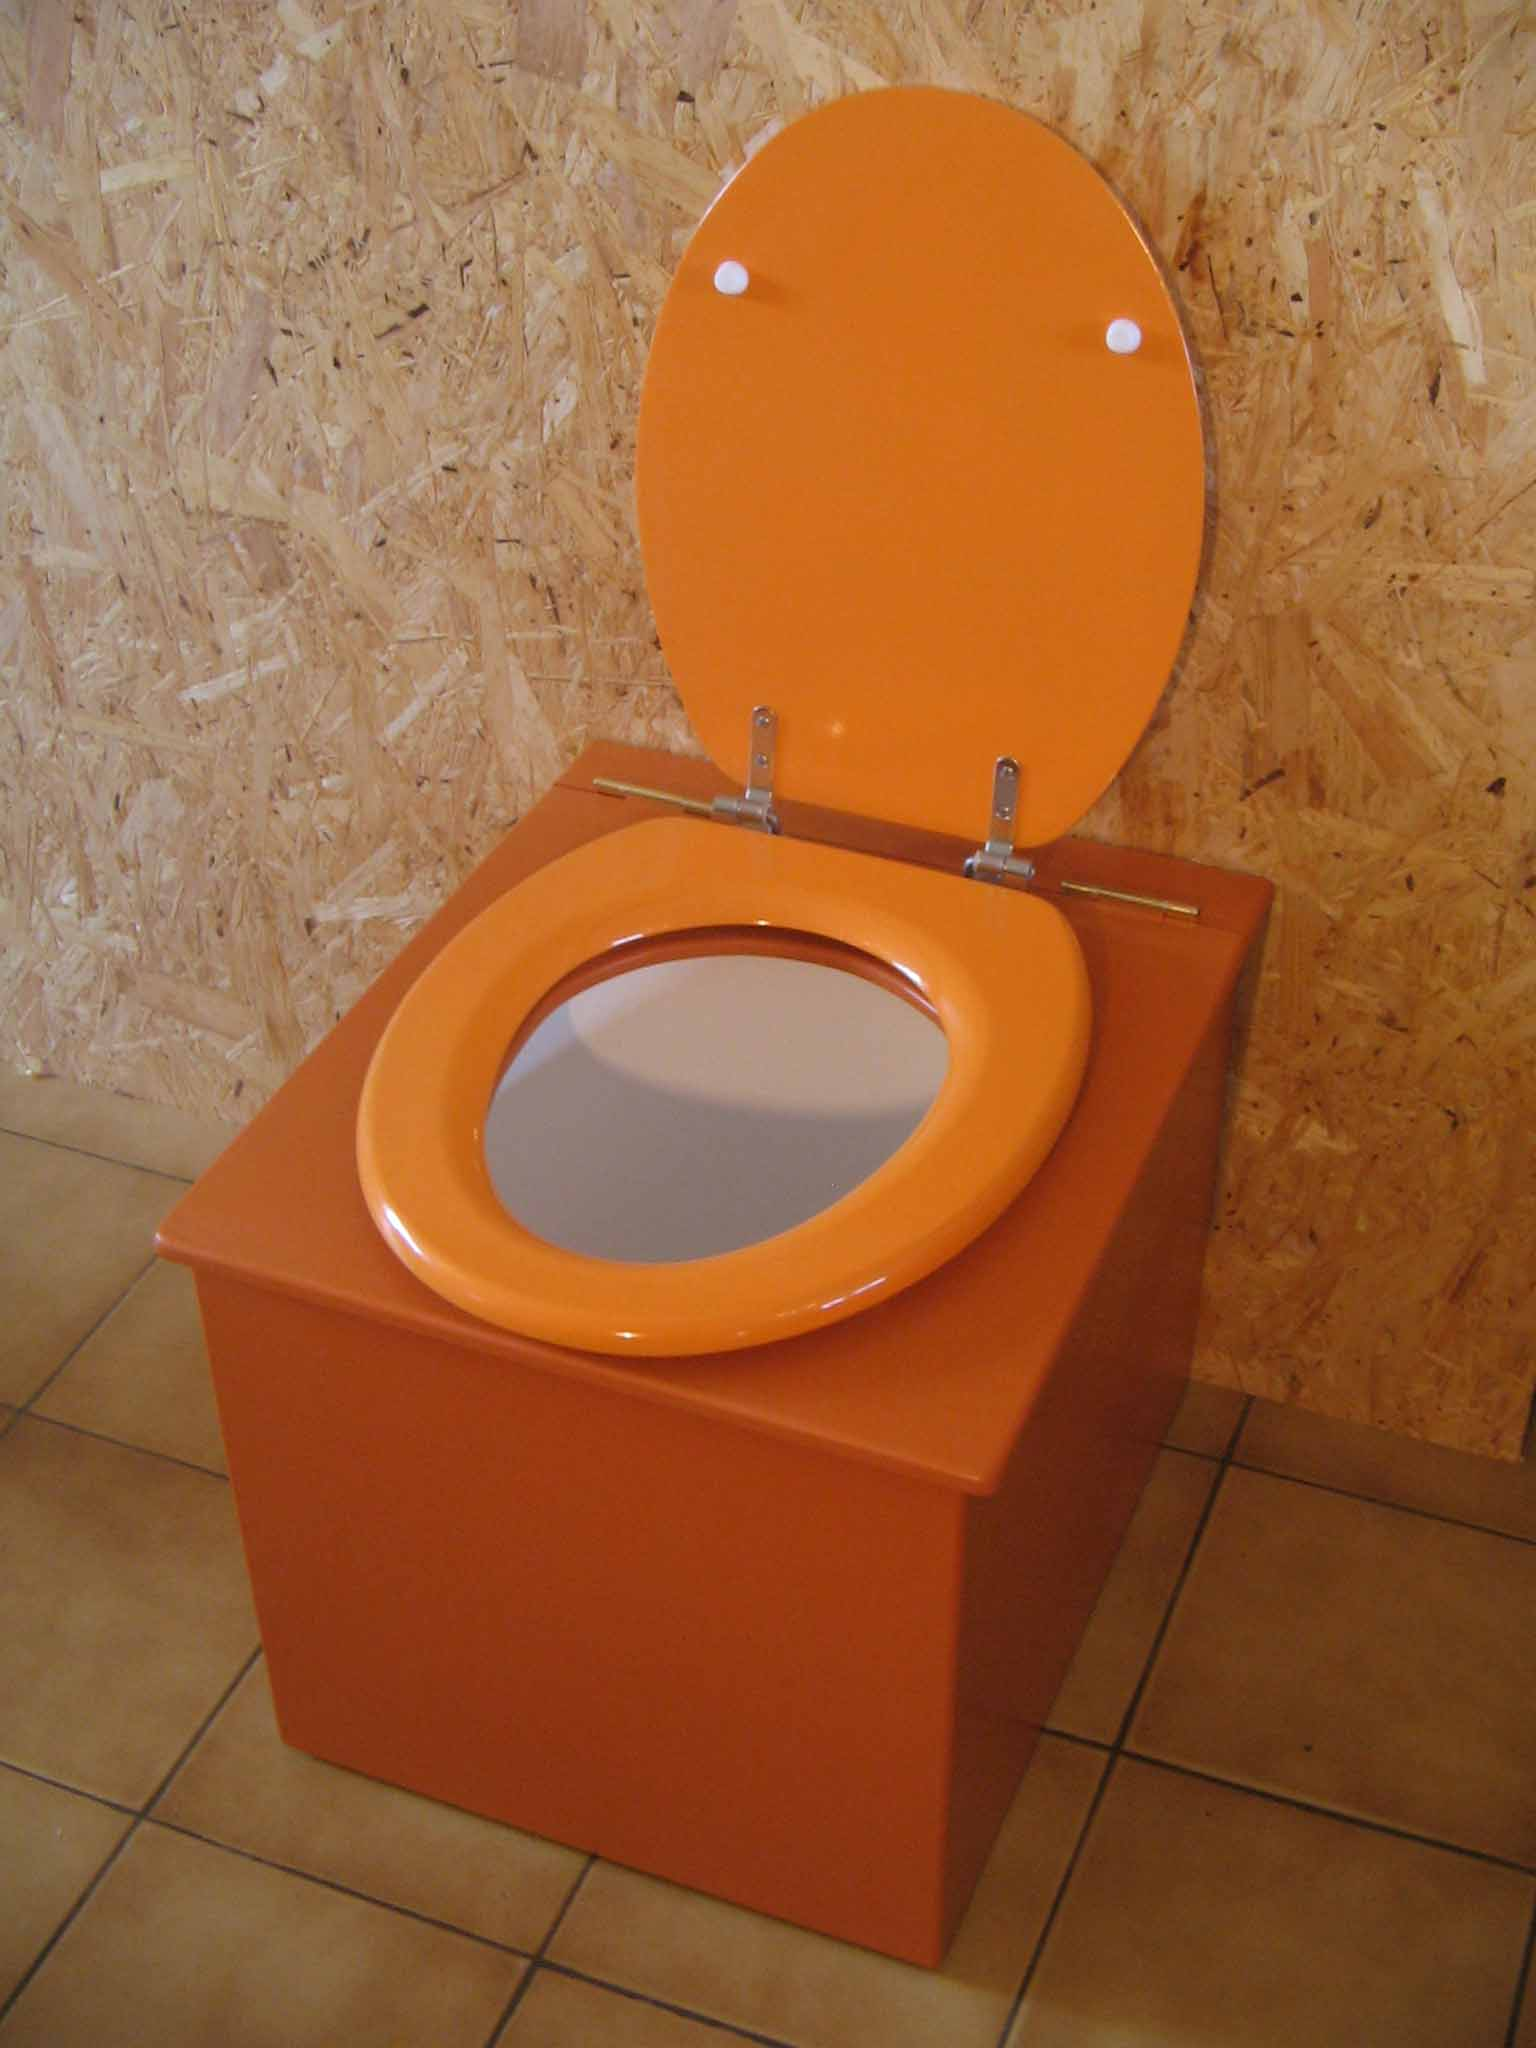 toilette sèche prix orange